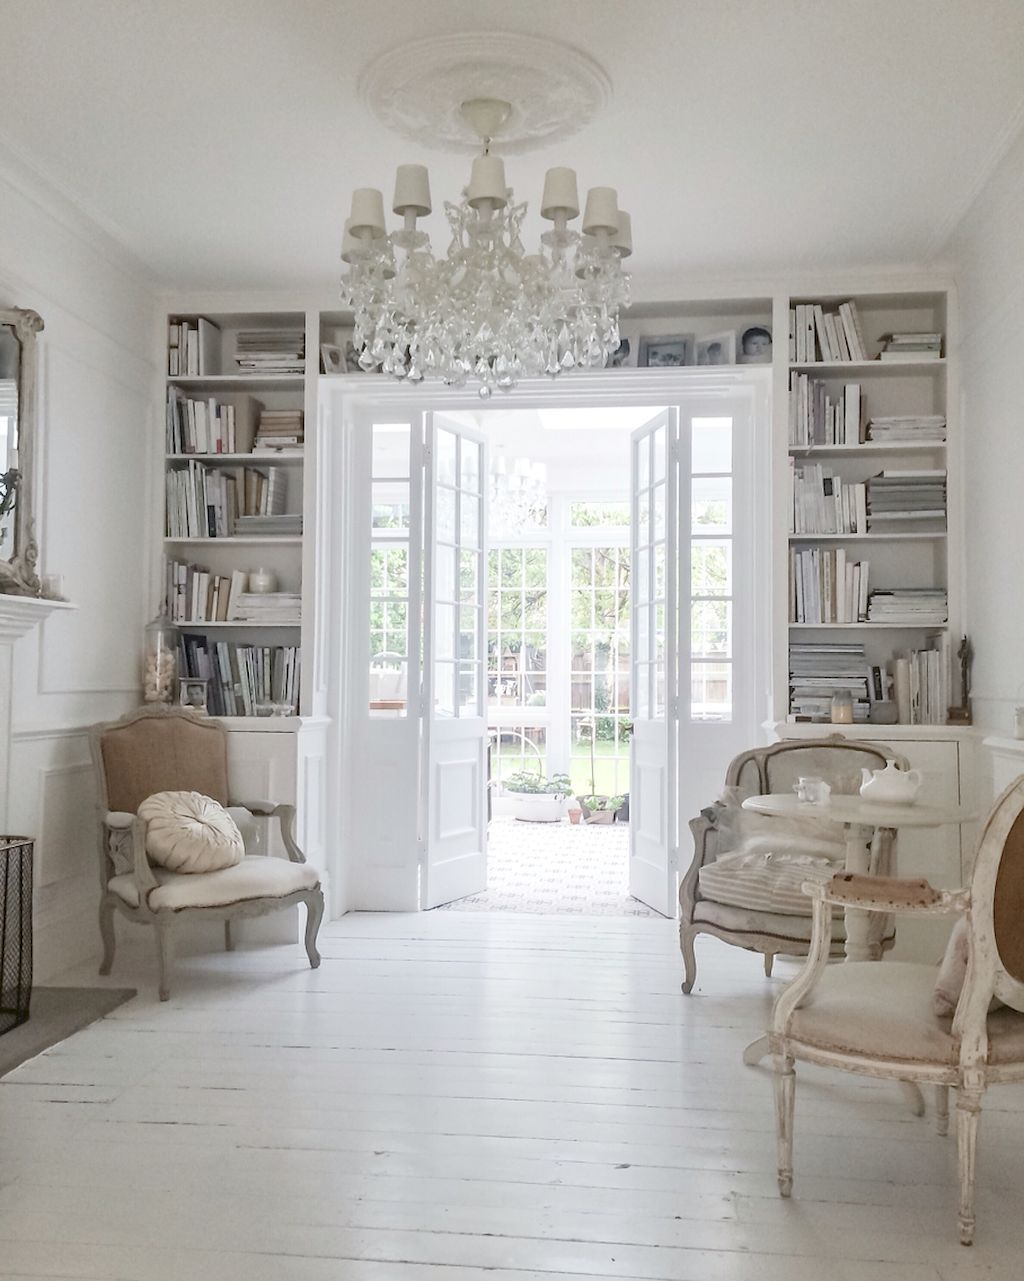 Stunning french country living room decor ideas (67 | French country ...